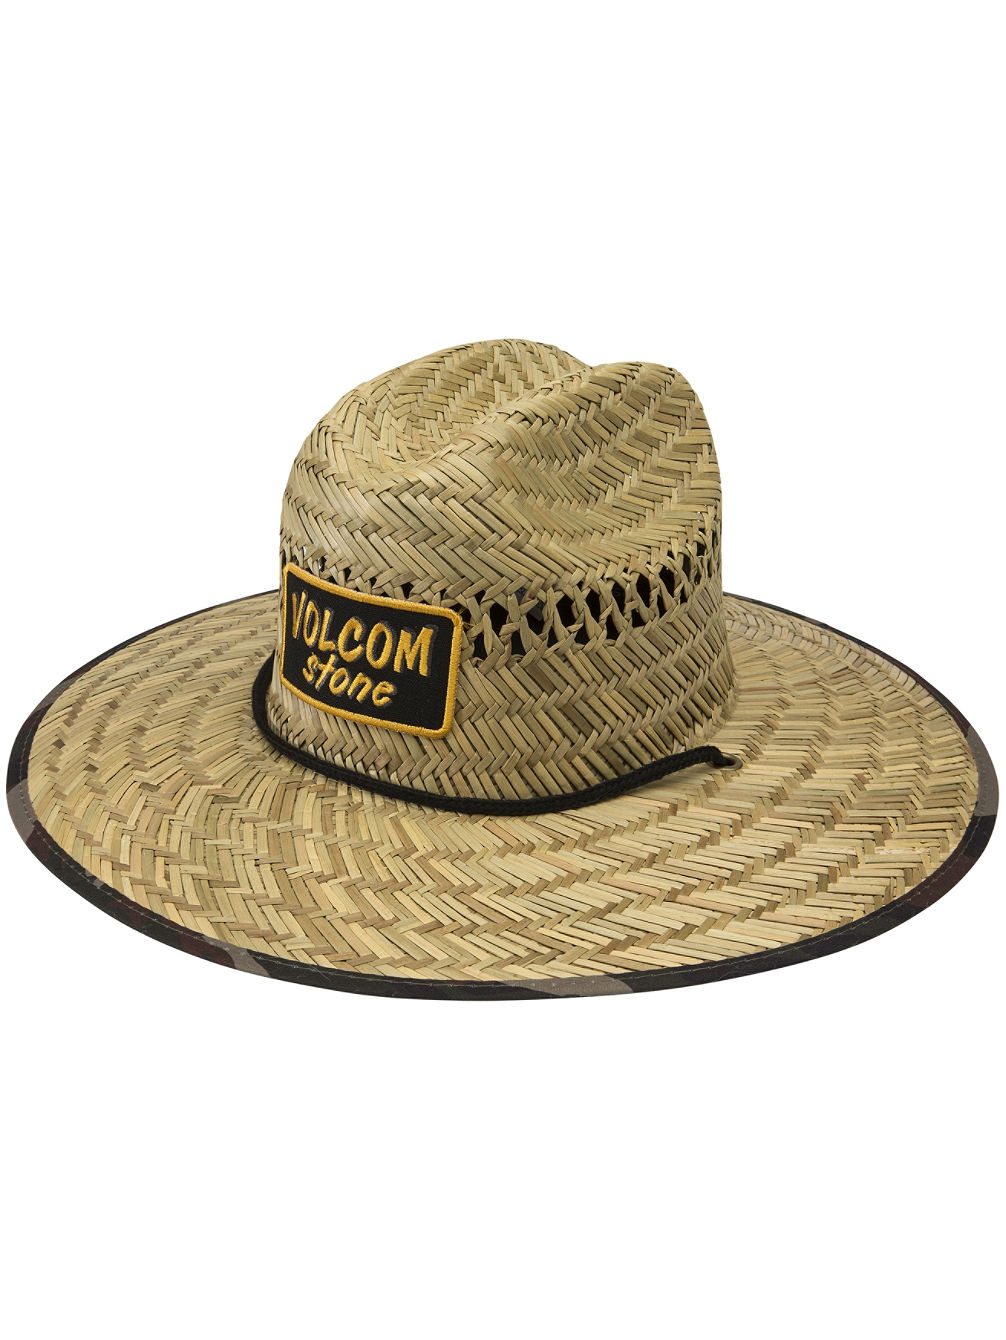 premium selection d653a 036aa Trooper Straw Hat. Volcom